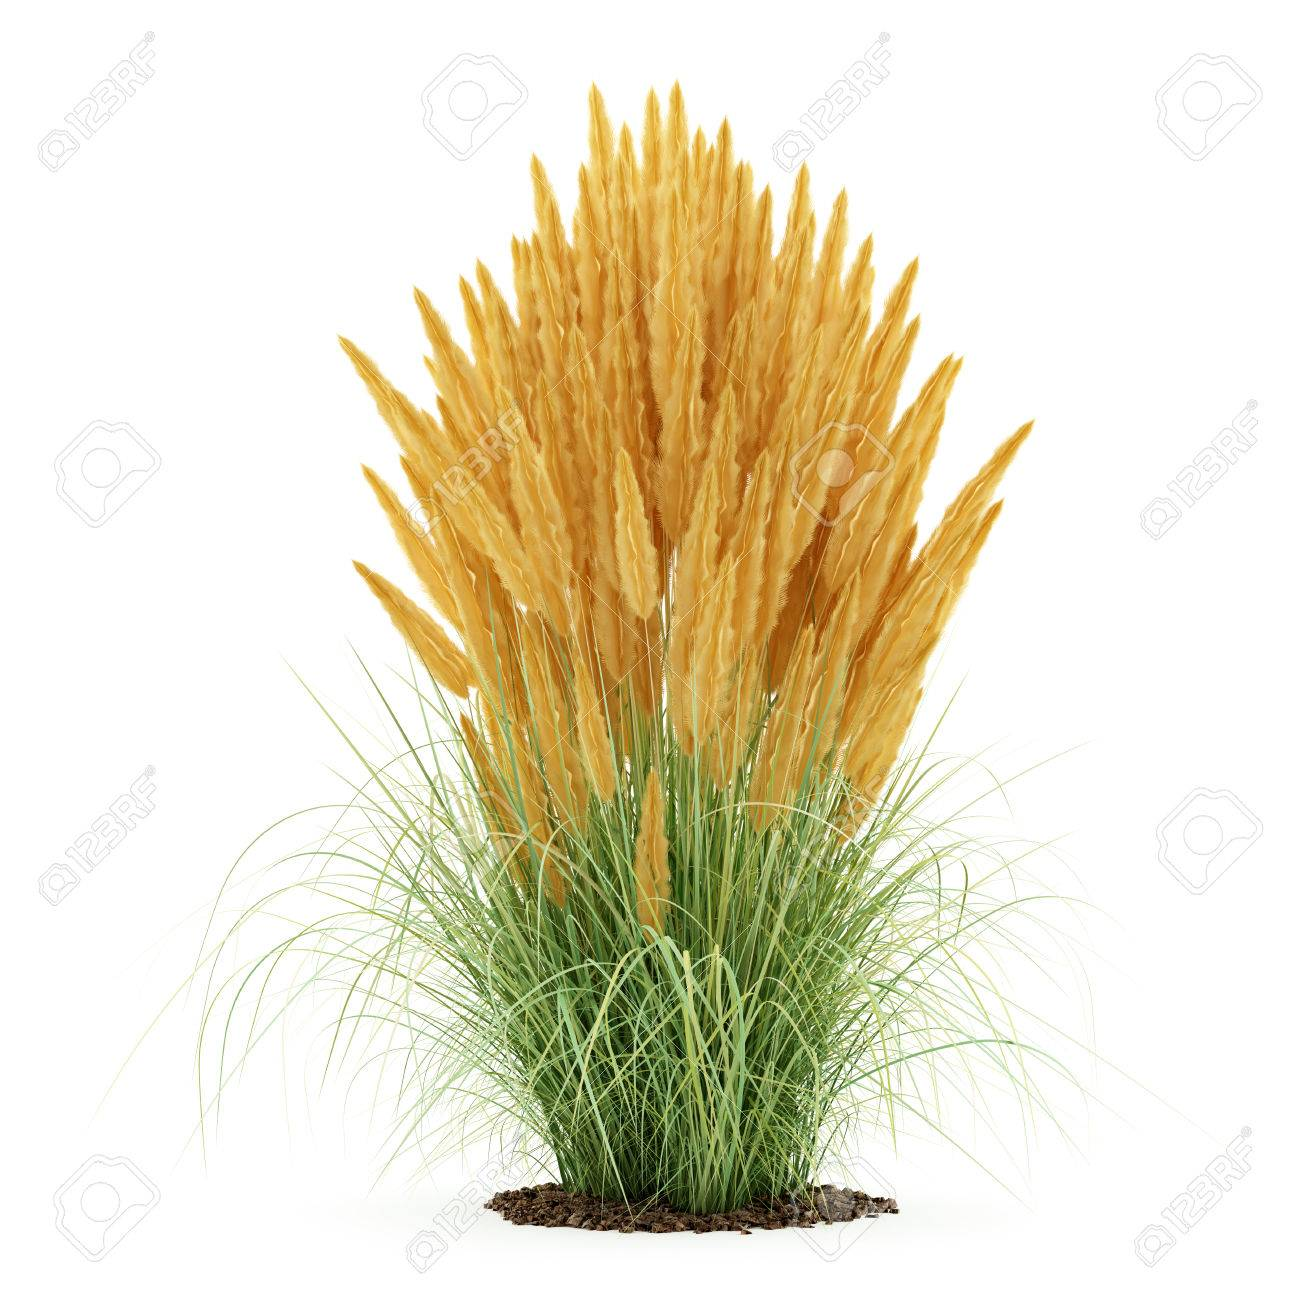 Ornamental Grass Plant Isolated On White Background 3d